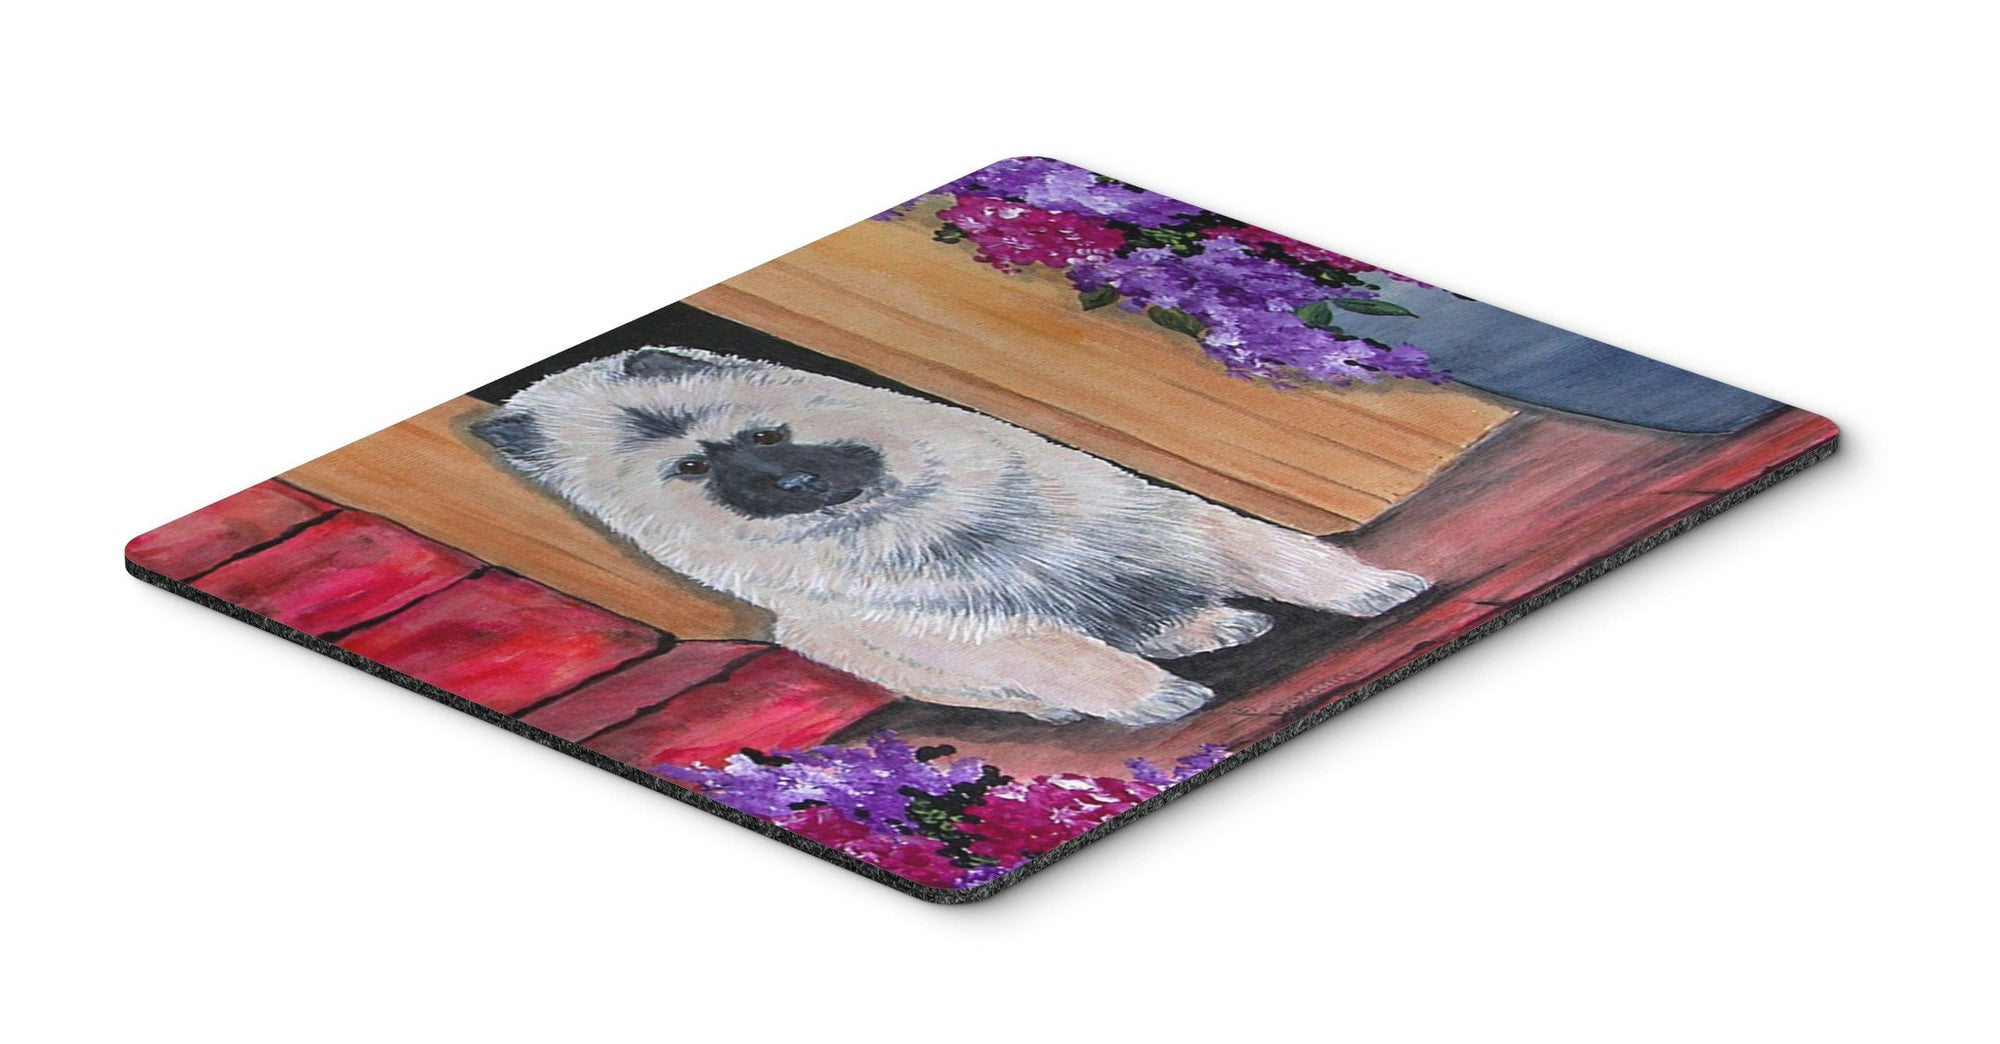 Keeshond Mouse pad, hot pad, or trivet by Caroline's Treasures